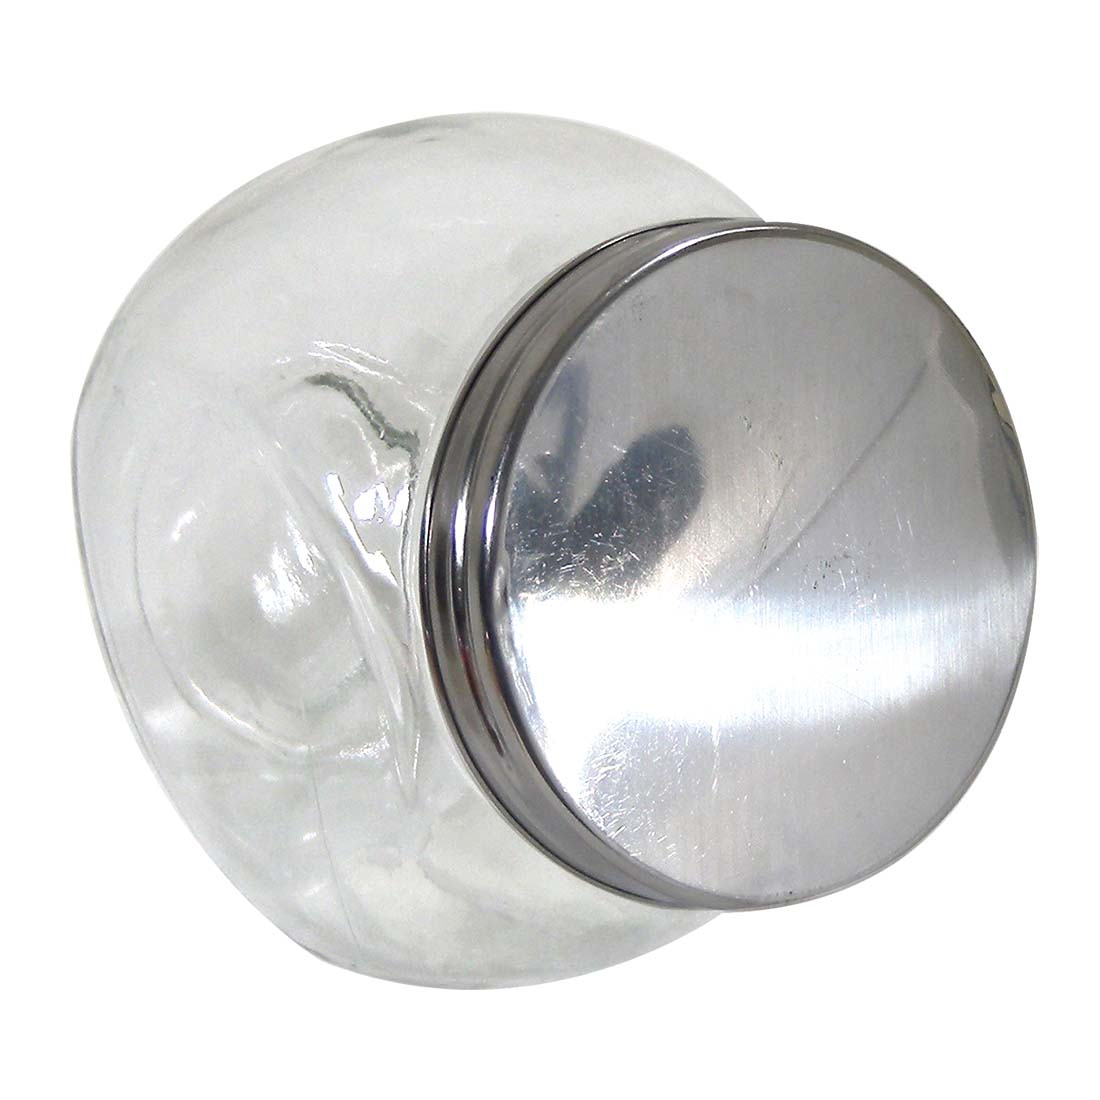 View GLASS JAR 22 OZ WITH METAL LID